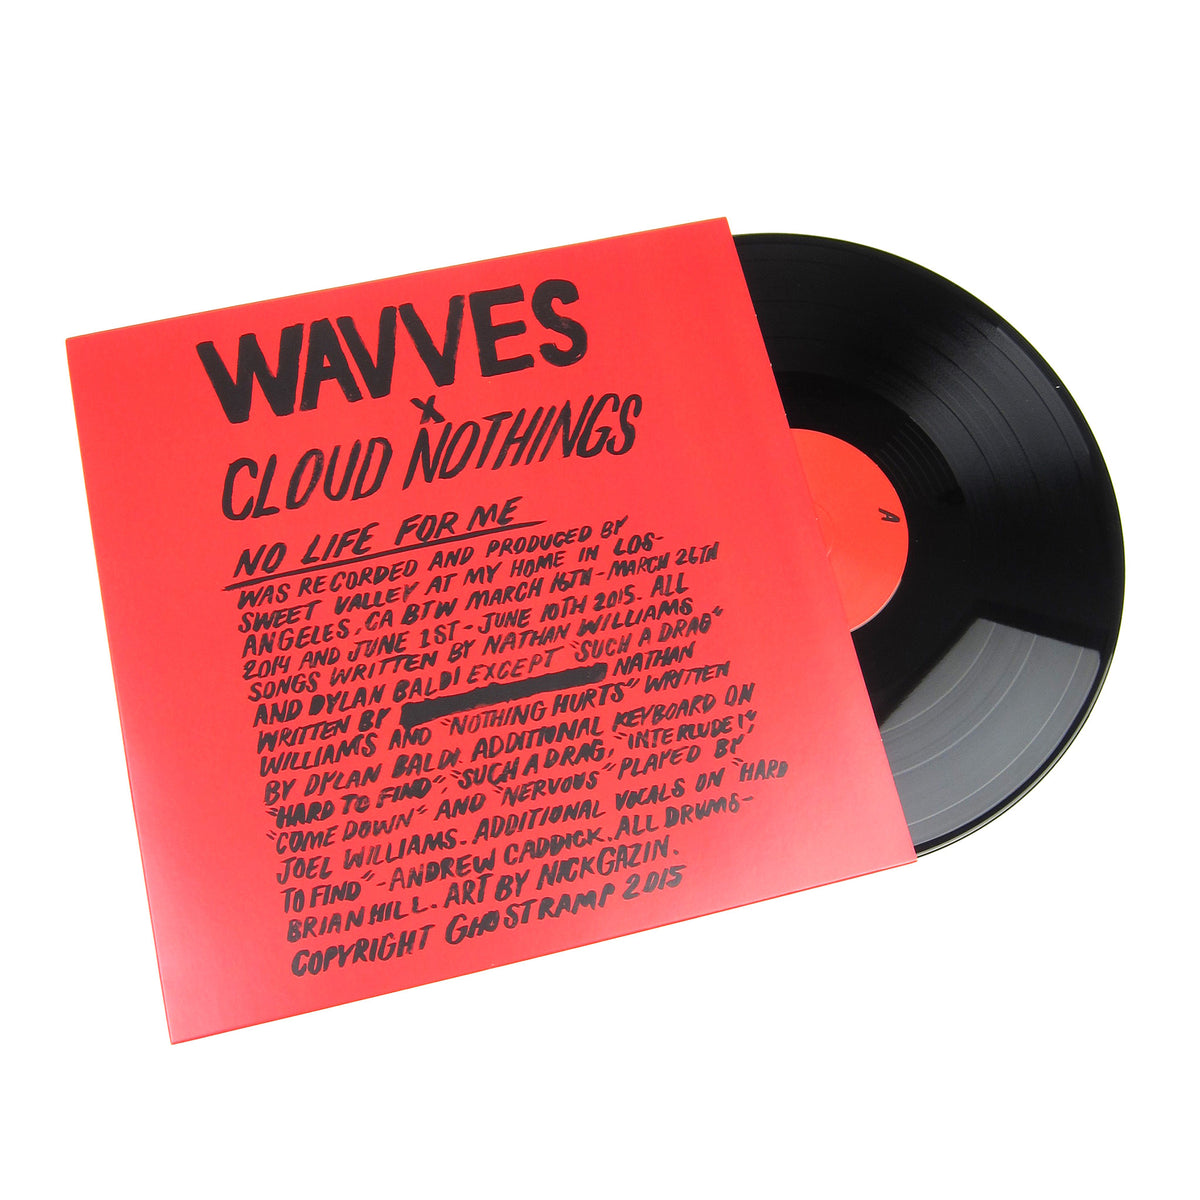 Wavves / Cloud Nothings: No Life For Me Vinyl LP